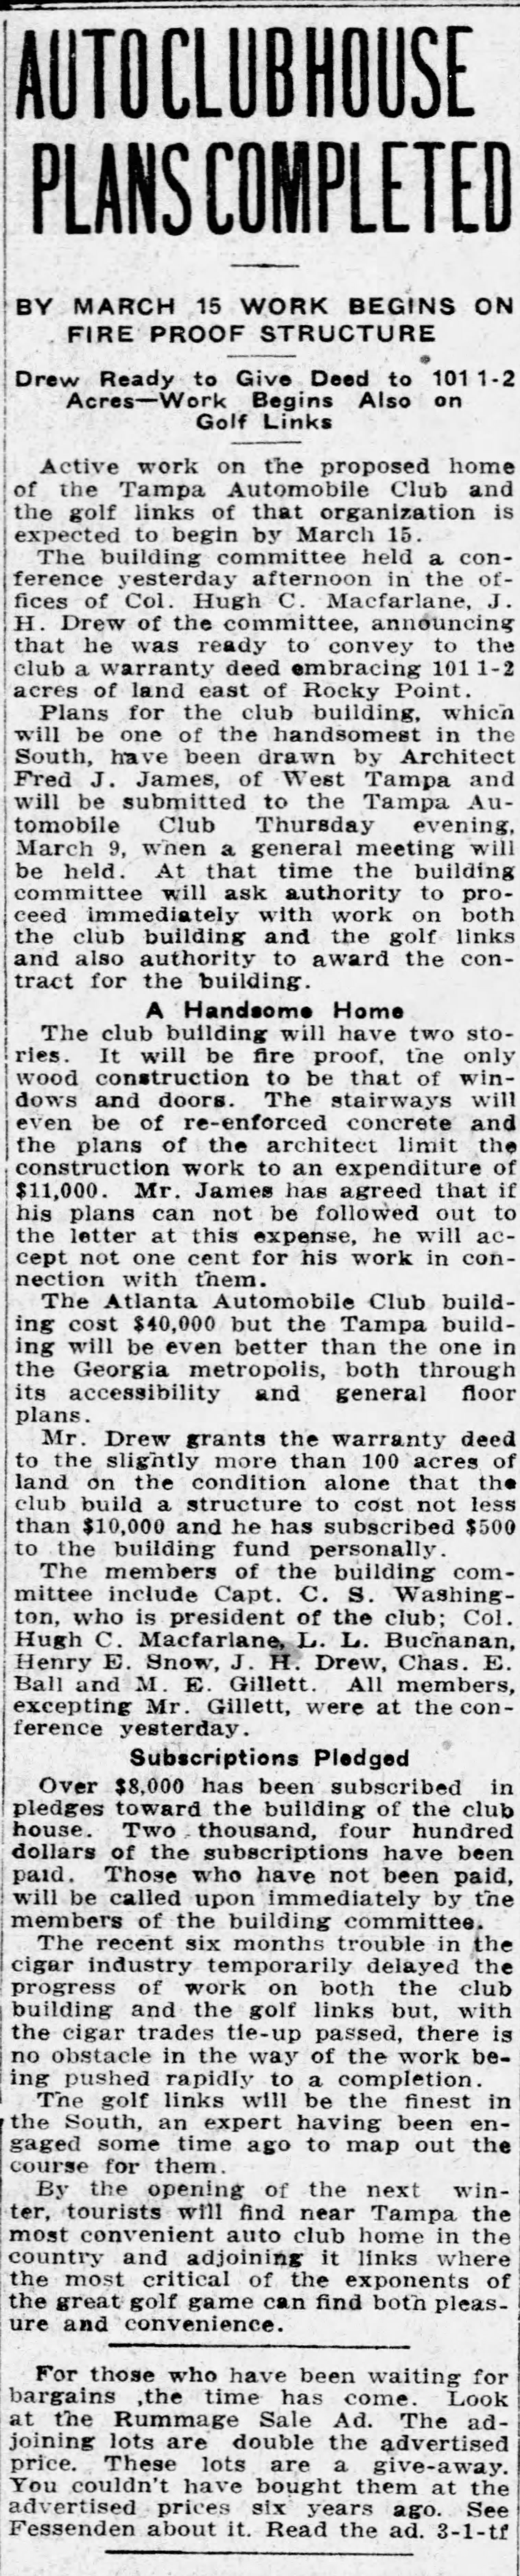 Auto clubhouse plans completed - Mar 4, 1911 Tampa Tribune